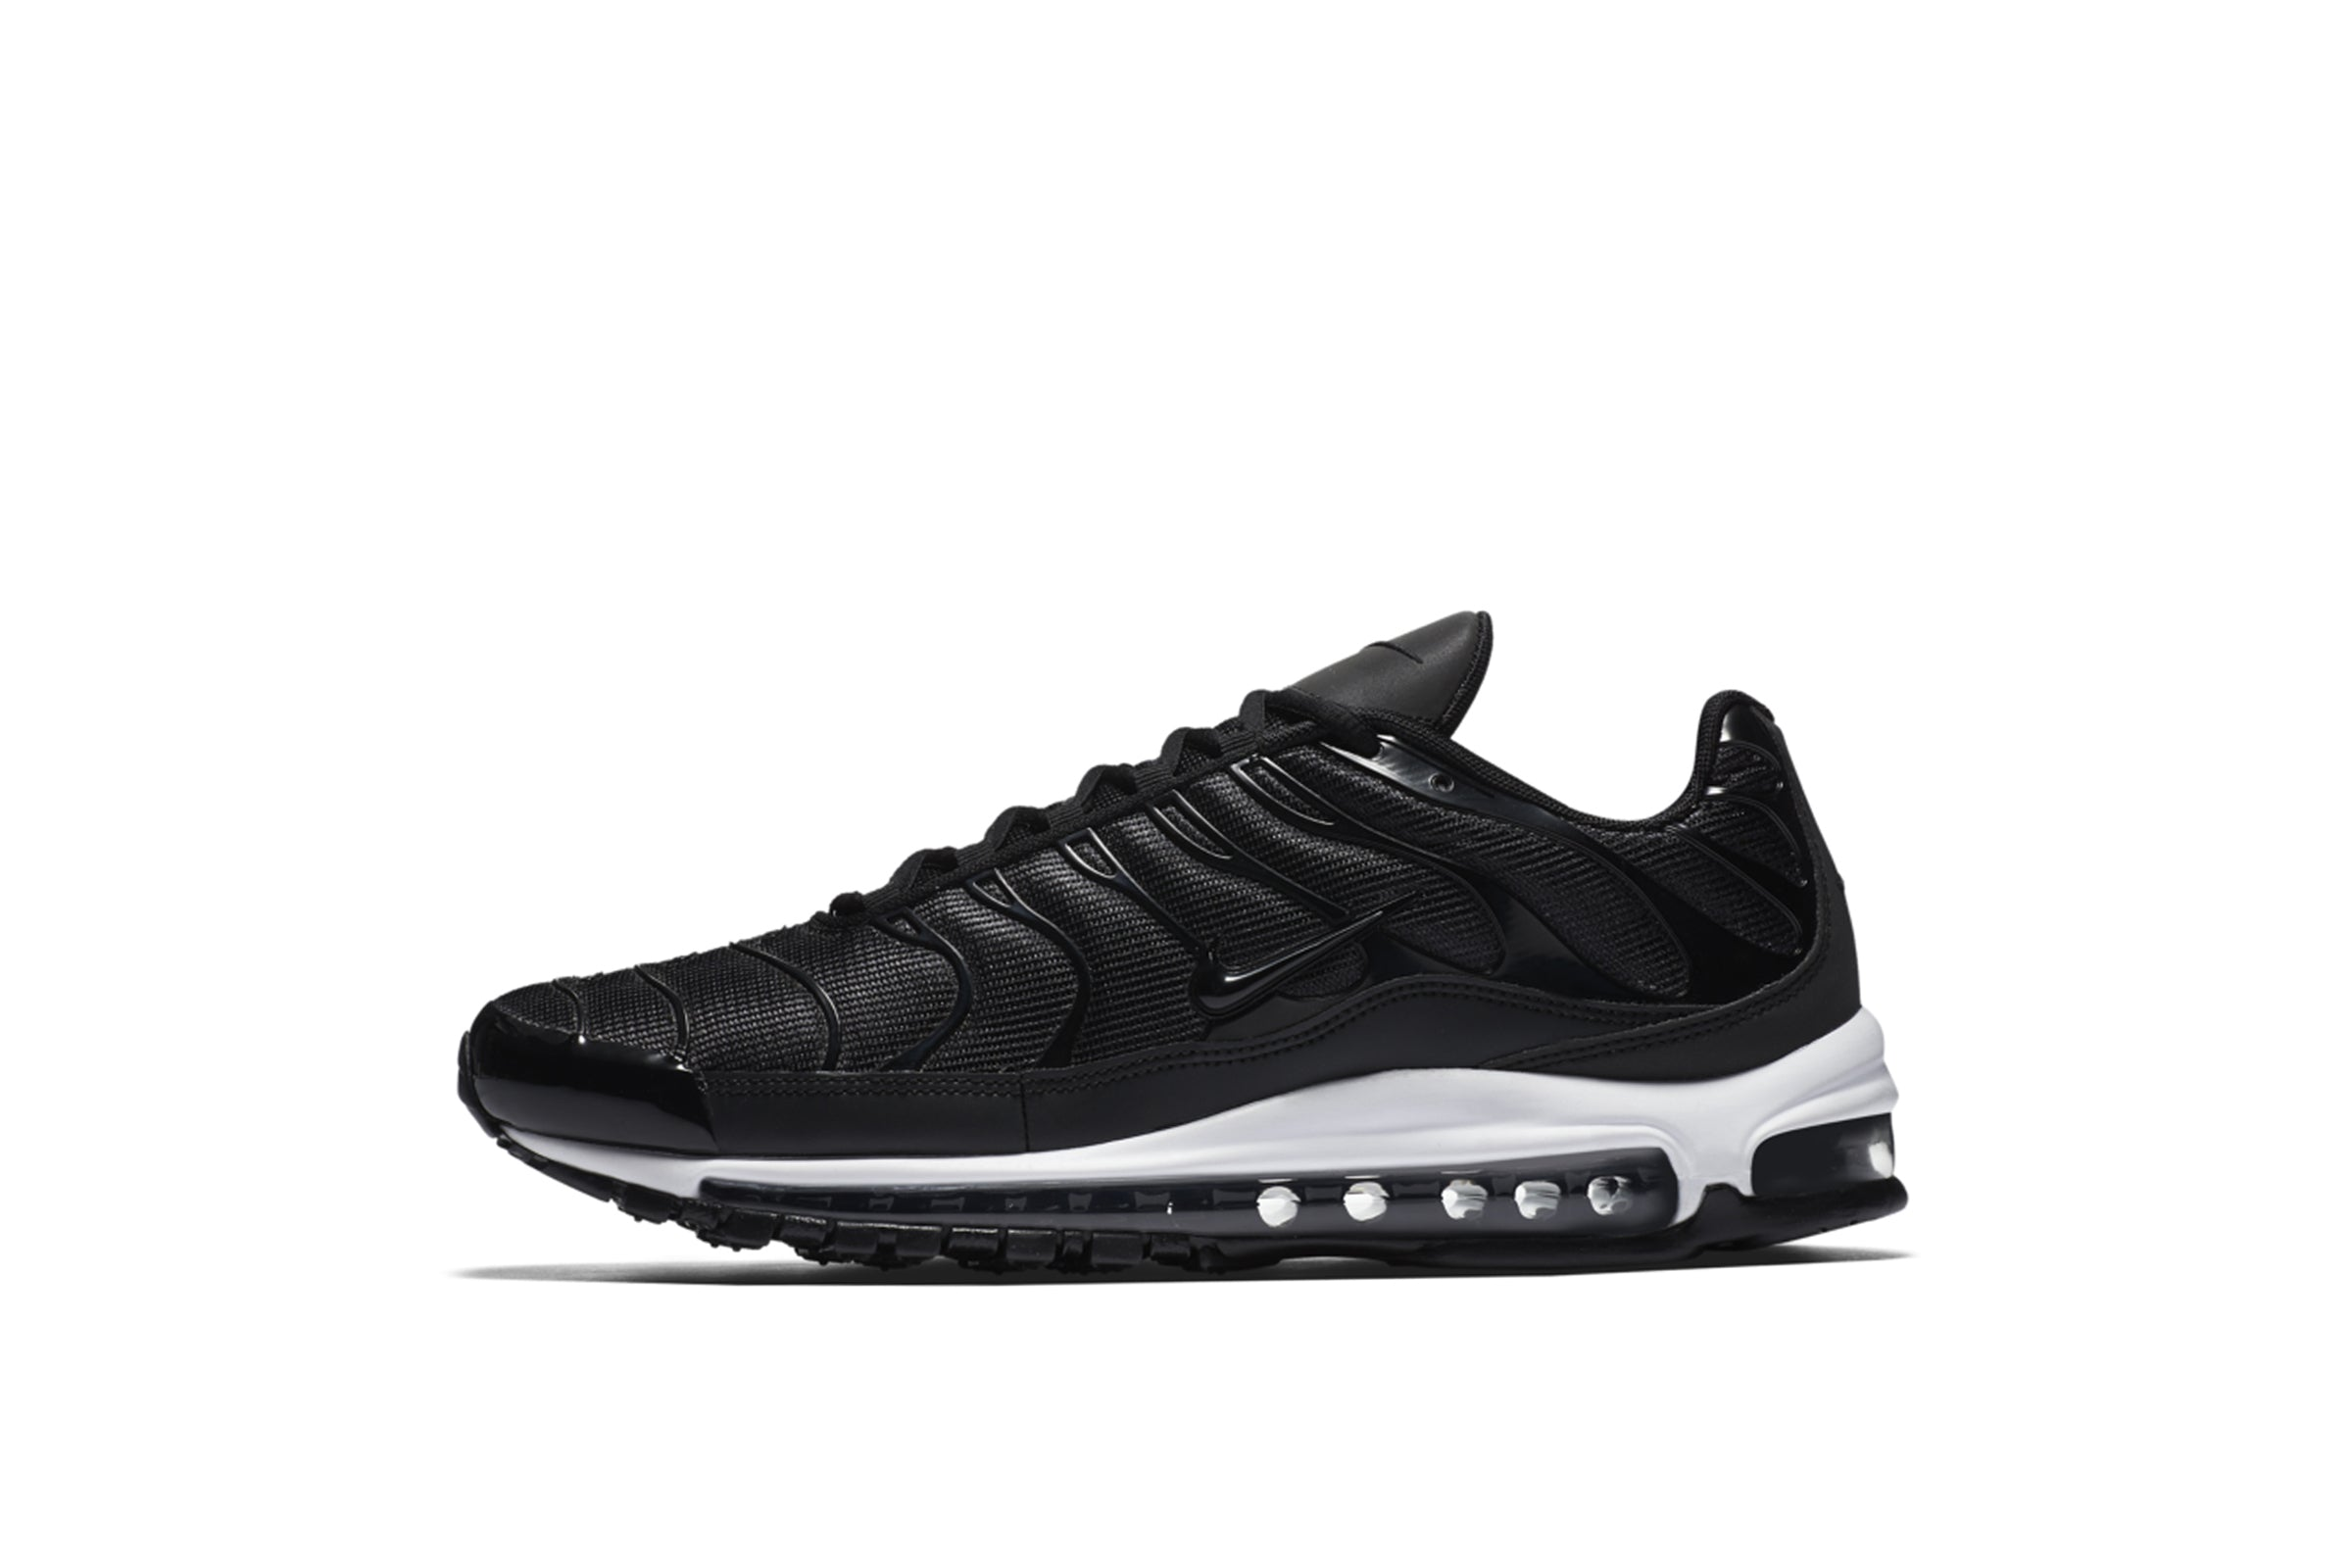 Nike Lab Air Max Plus Slvr SP